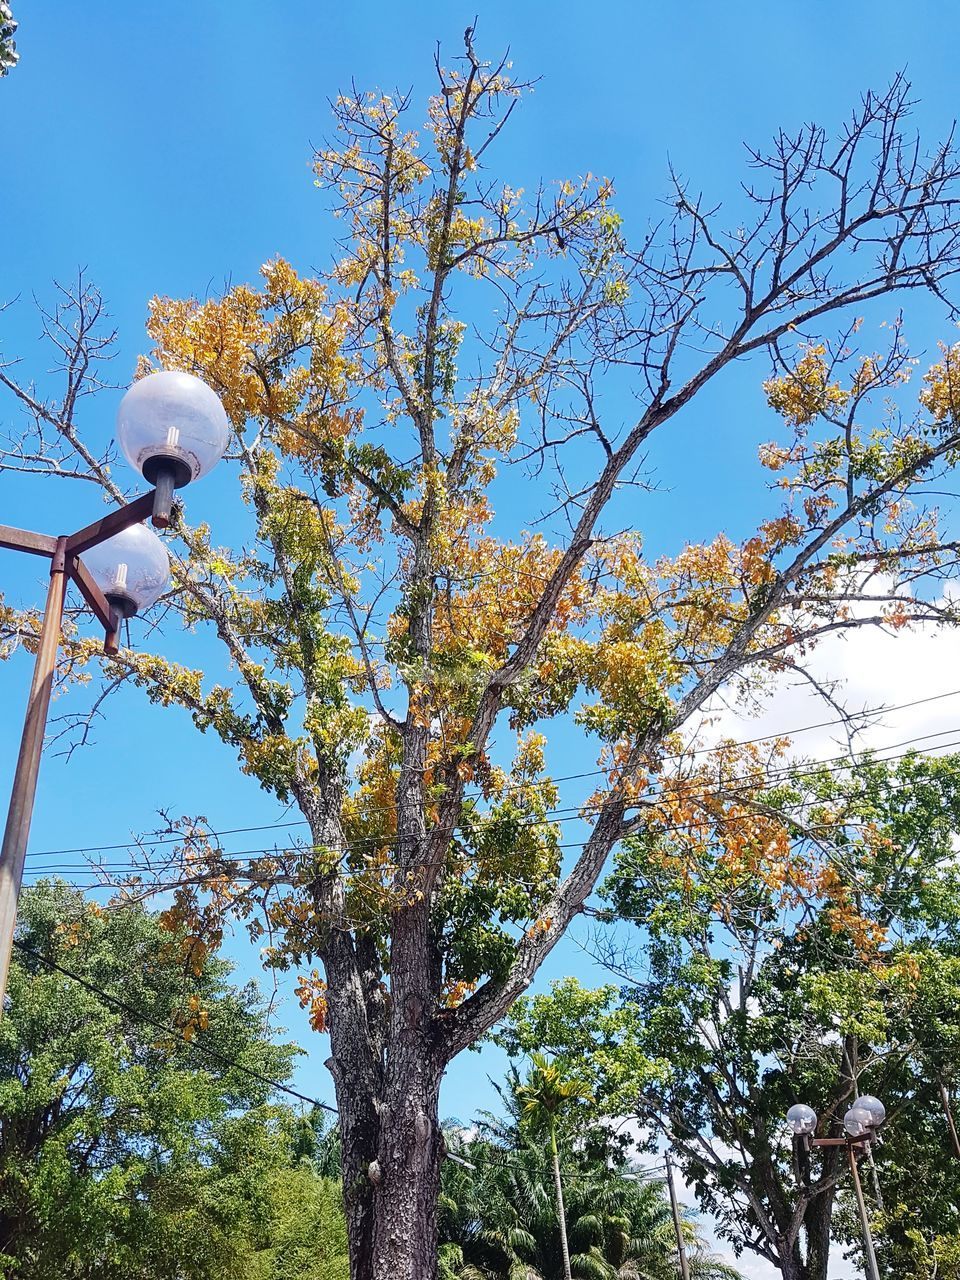 tree, plant, low angle view, growth, sky, branch, day, nature, beauty in nature, no people, flowering plant, flower, blue, lighting equipment, outdoors, clear sky, autumn, blossom, tranquility, springtime, cherry blossom